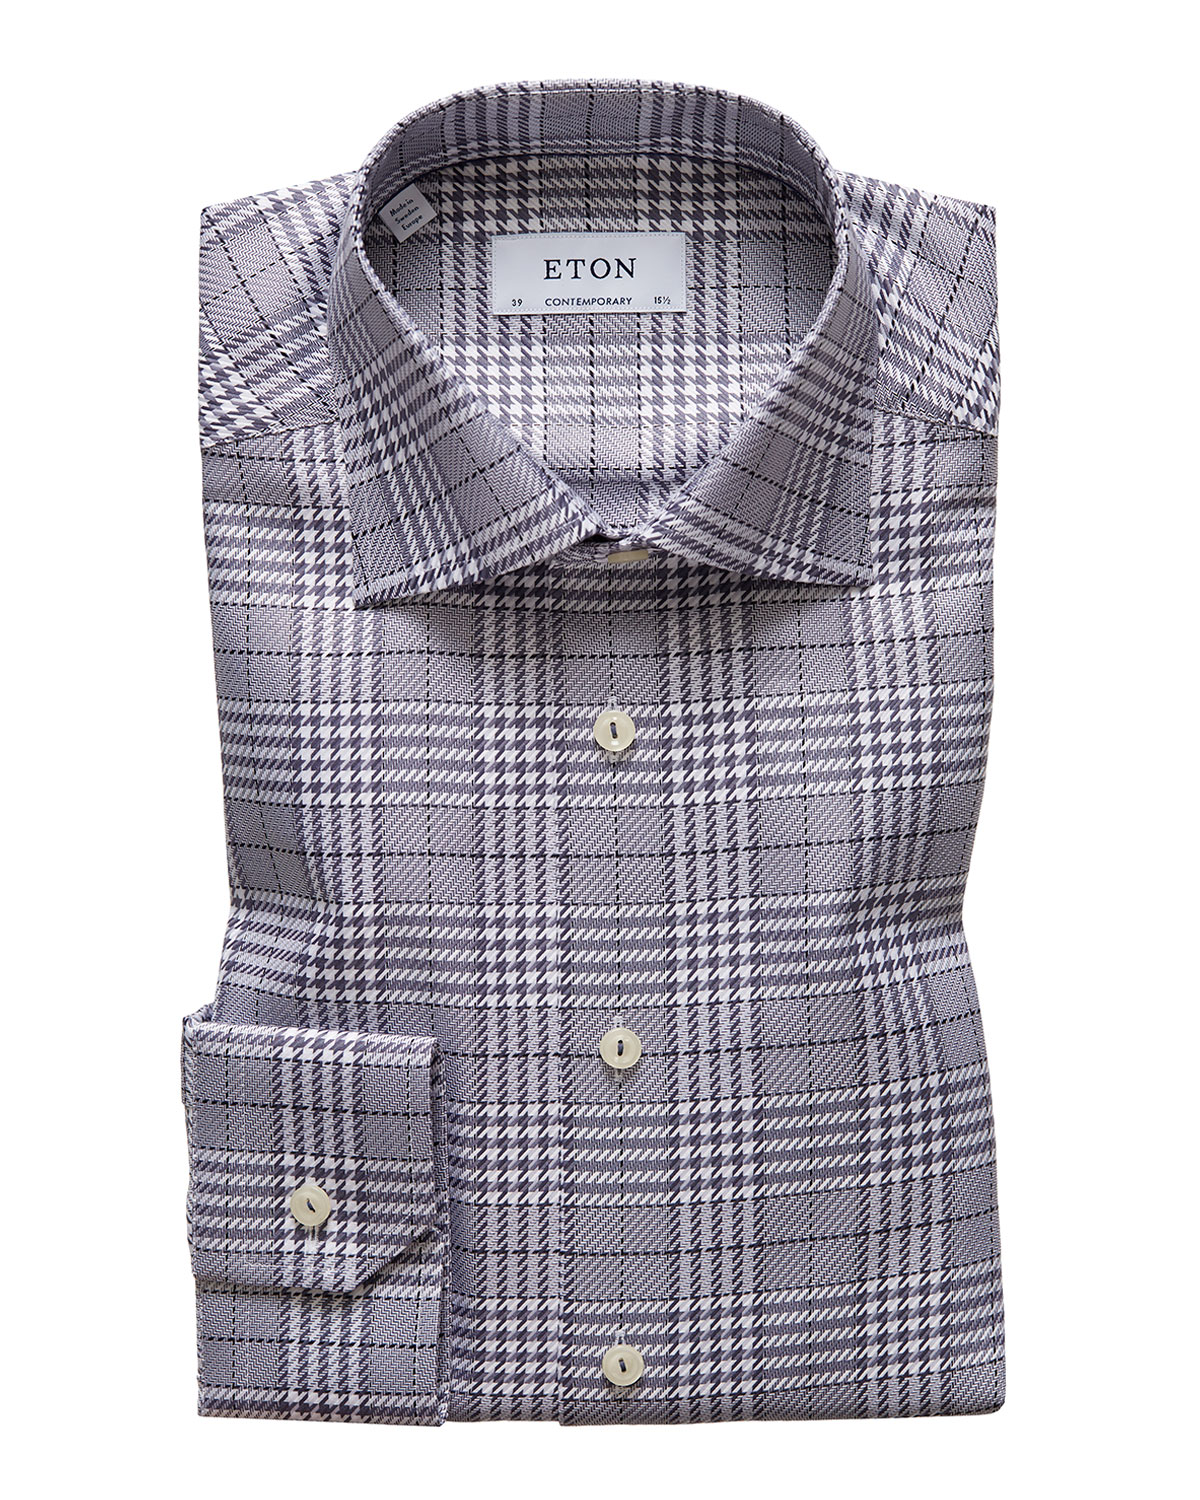 Eton Men's Contemporary Textured Houndstooth Dress Shirt